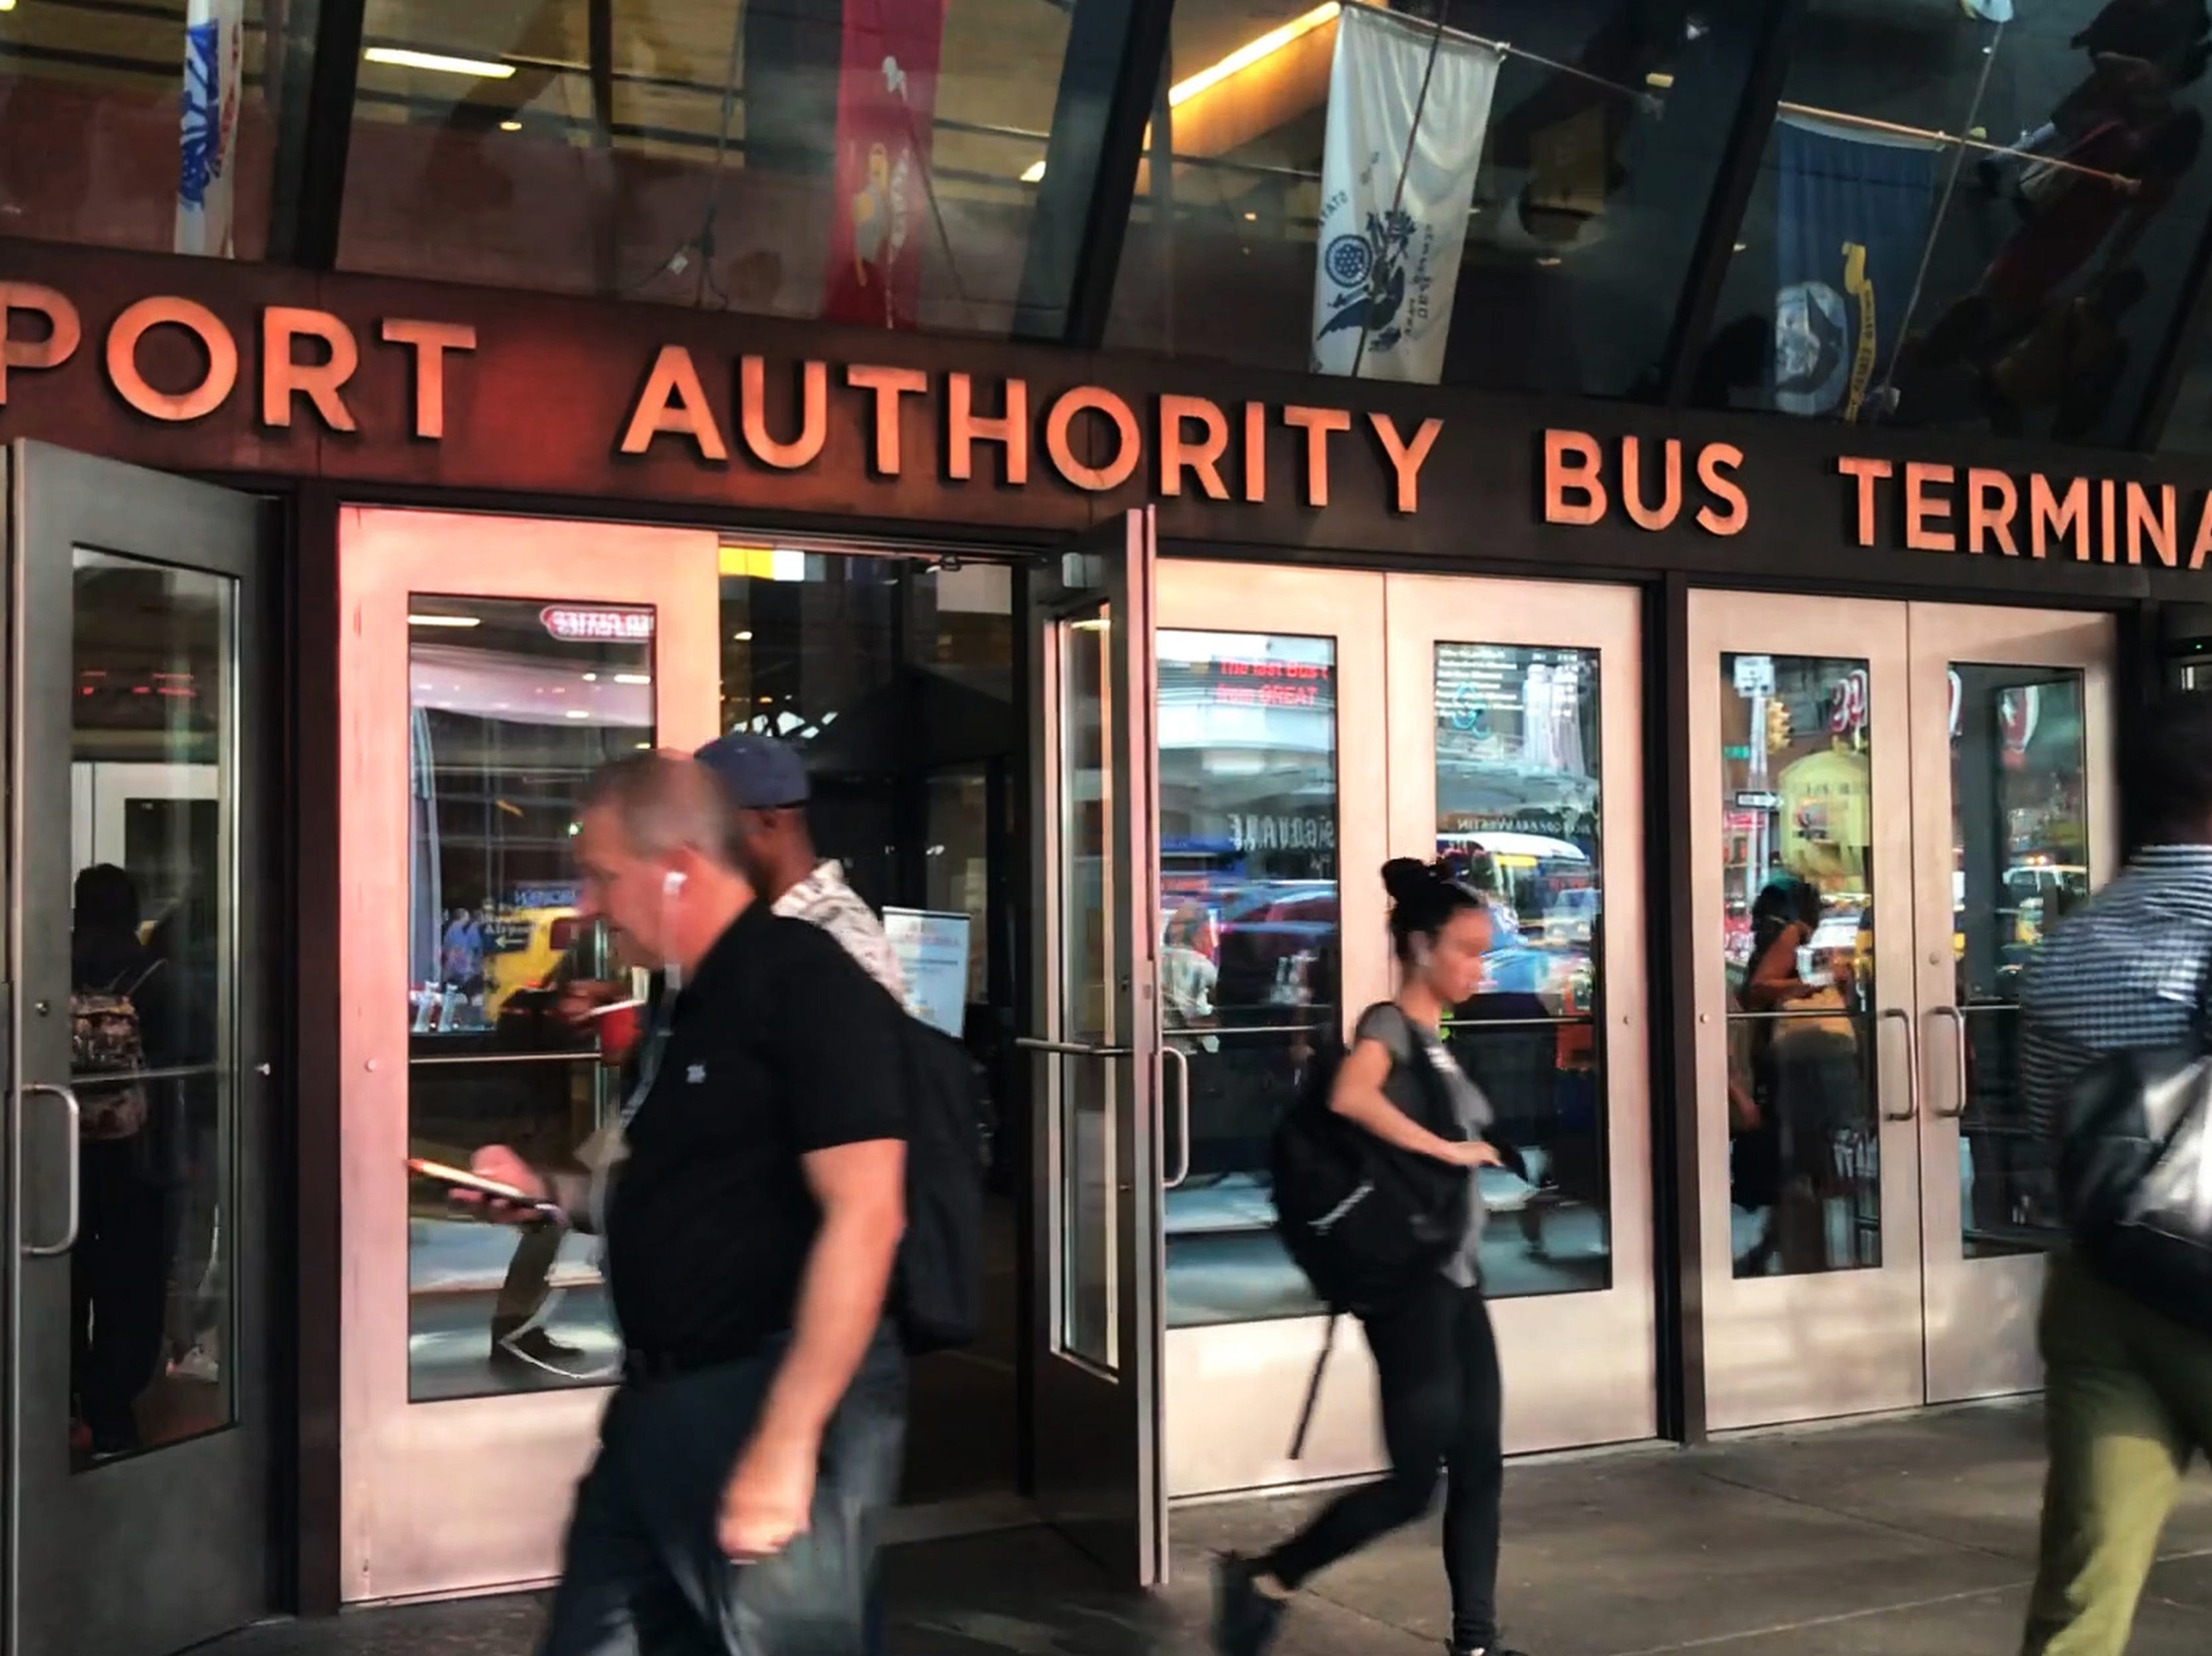 Commuters pass through the entrance of the Port Authority Bus Terminal in Manhattan on Tuesday September 4, 2018.